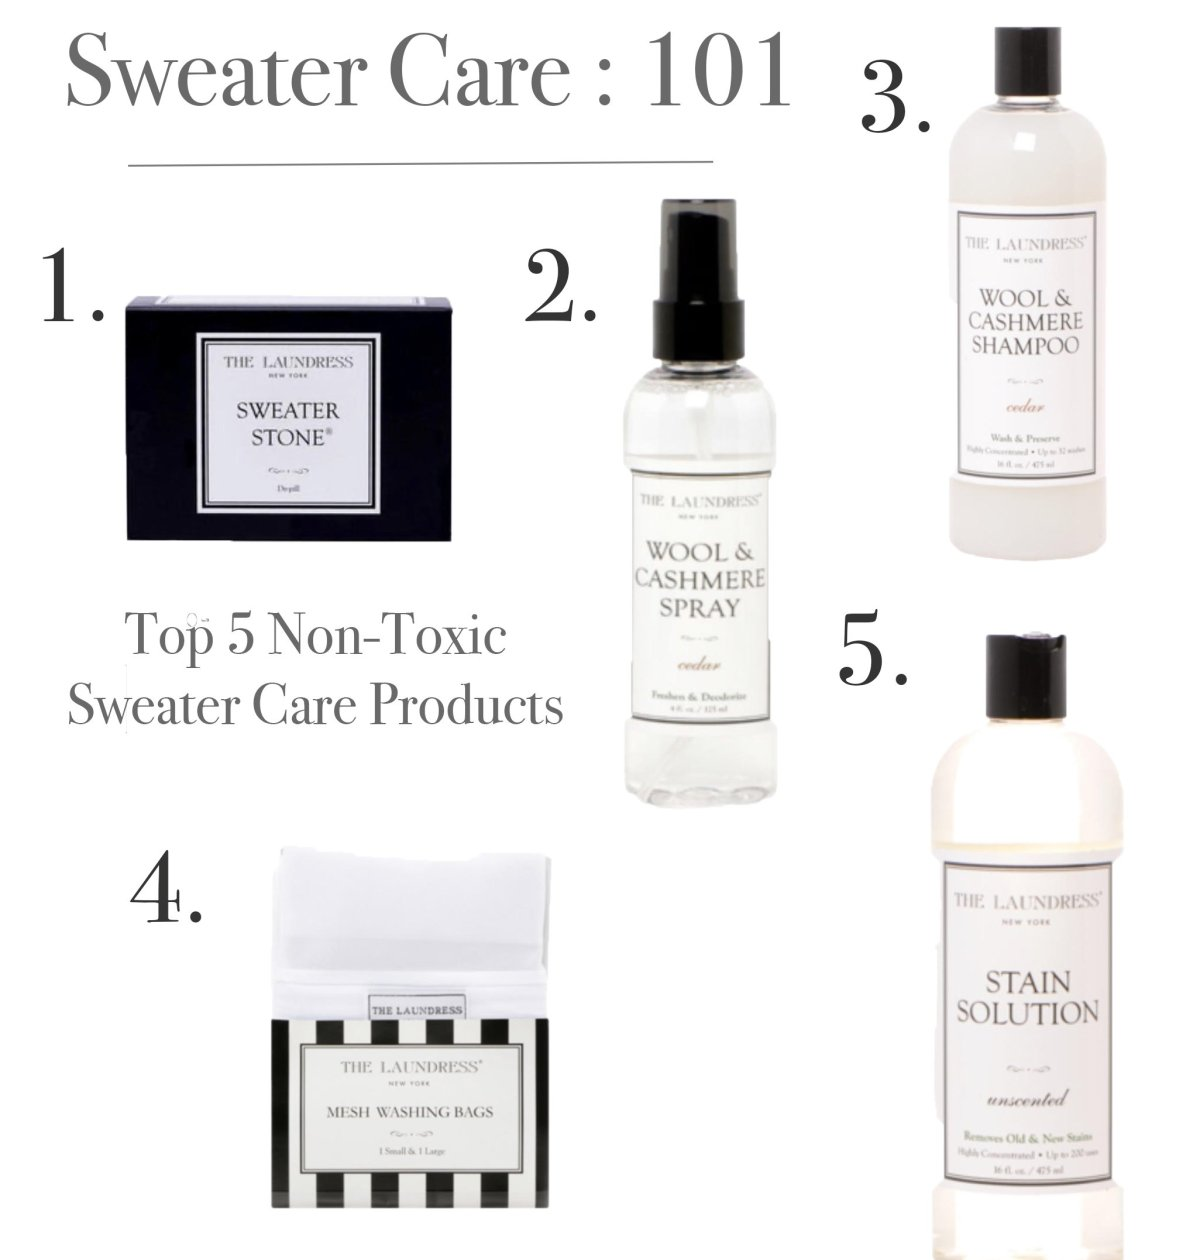 Sweater Care With The Laundress